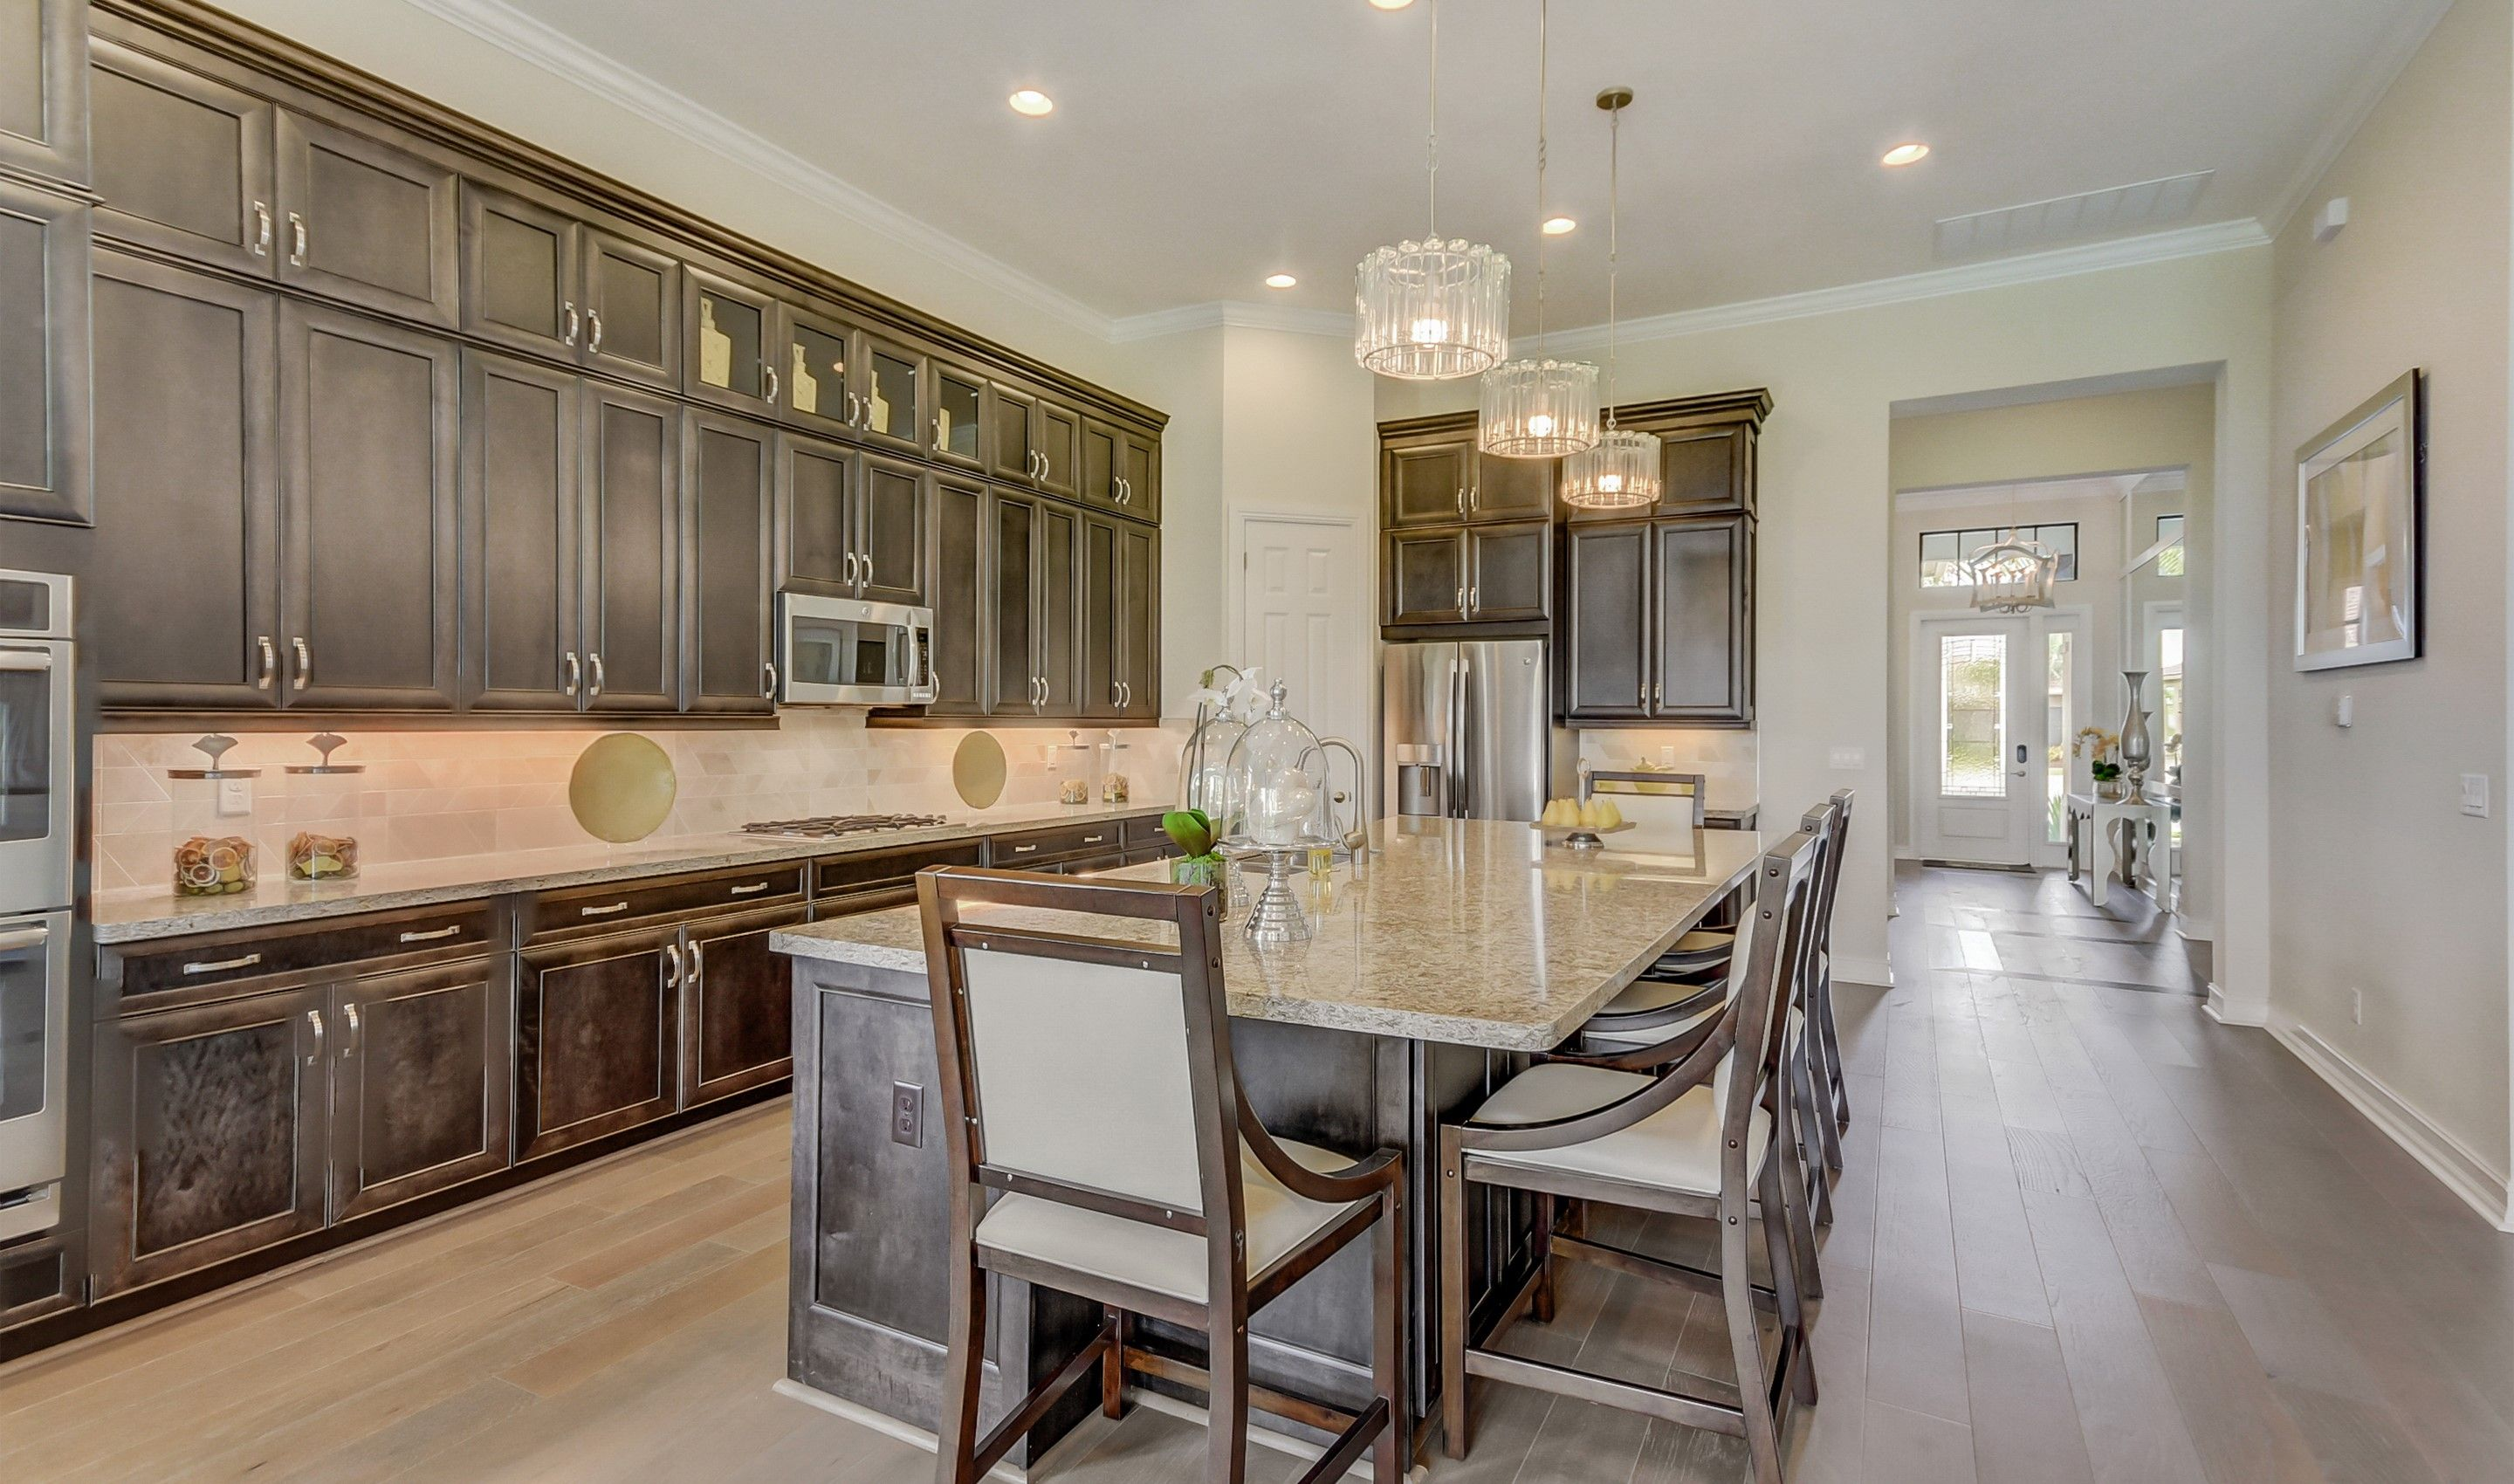 Kitchen featured in the Opal By K. Hovnanian's® Four Seasons in Broward County-Ft. Lauderdale, FL